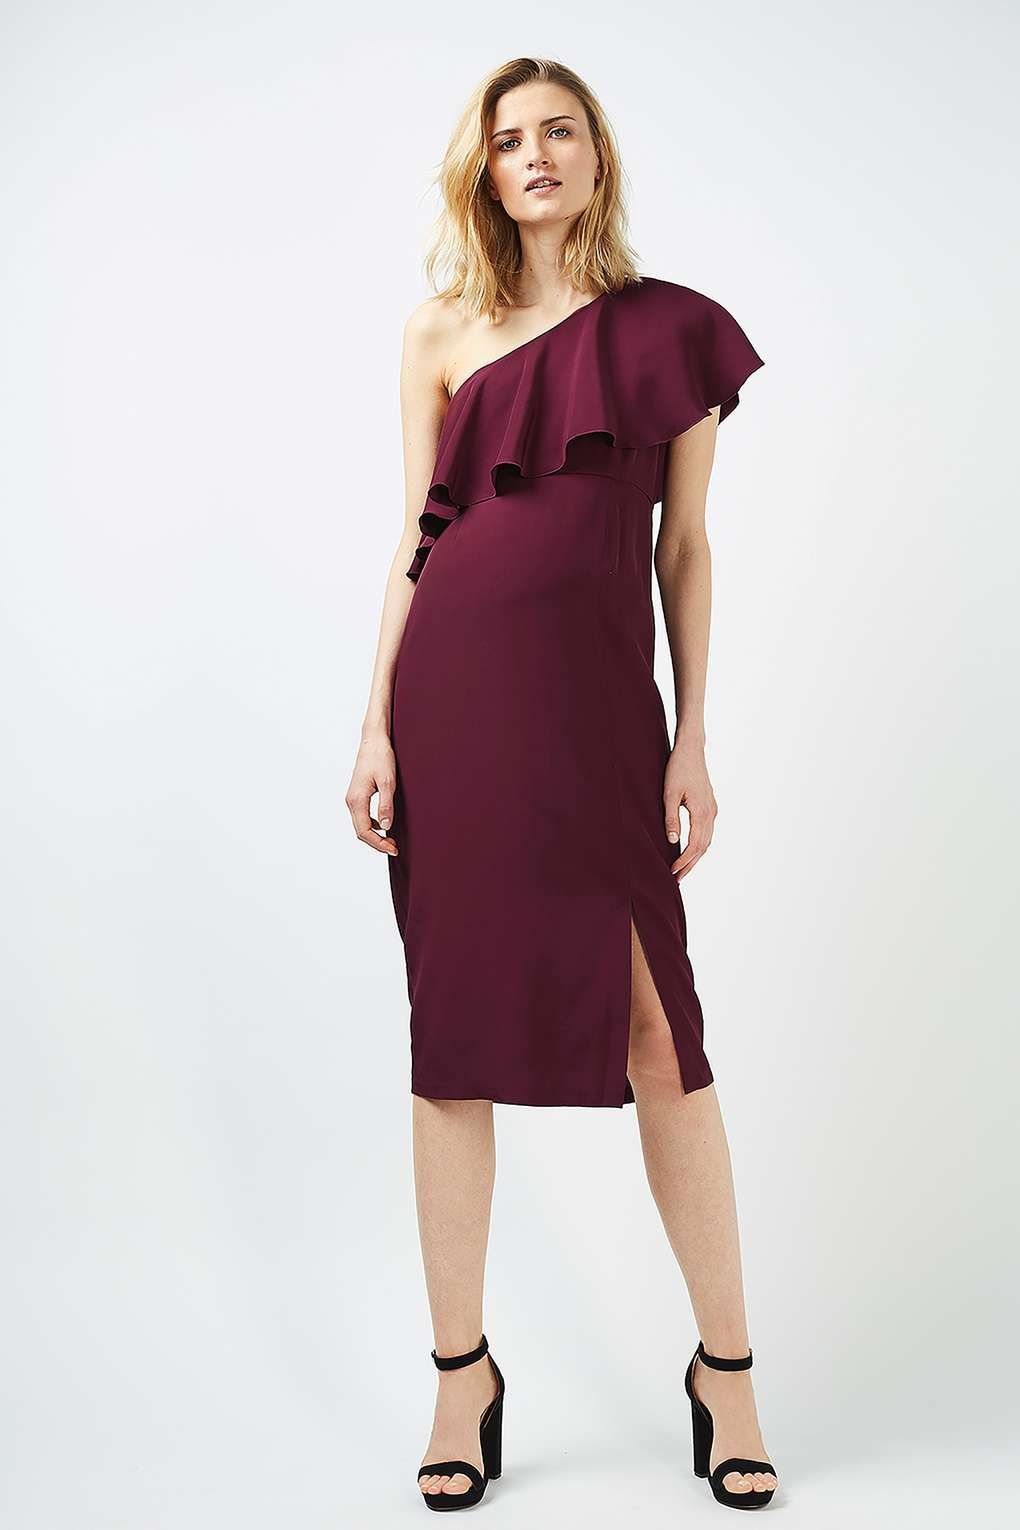 Maternity one shoulder frill dress maternity clothing frill maternity one shoulder frill dress maternity clothing topshop usa 110 ombrellifo Choice Image